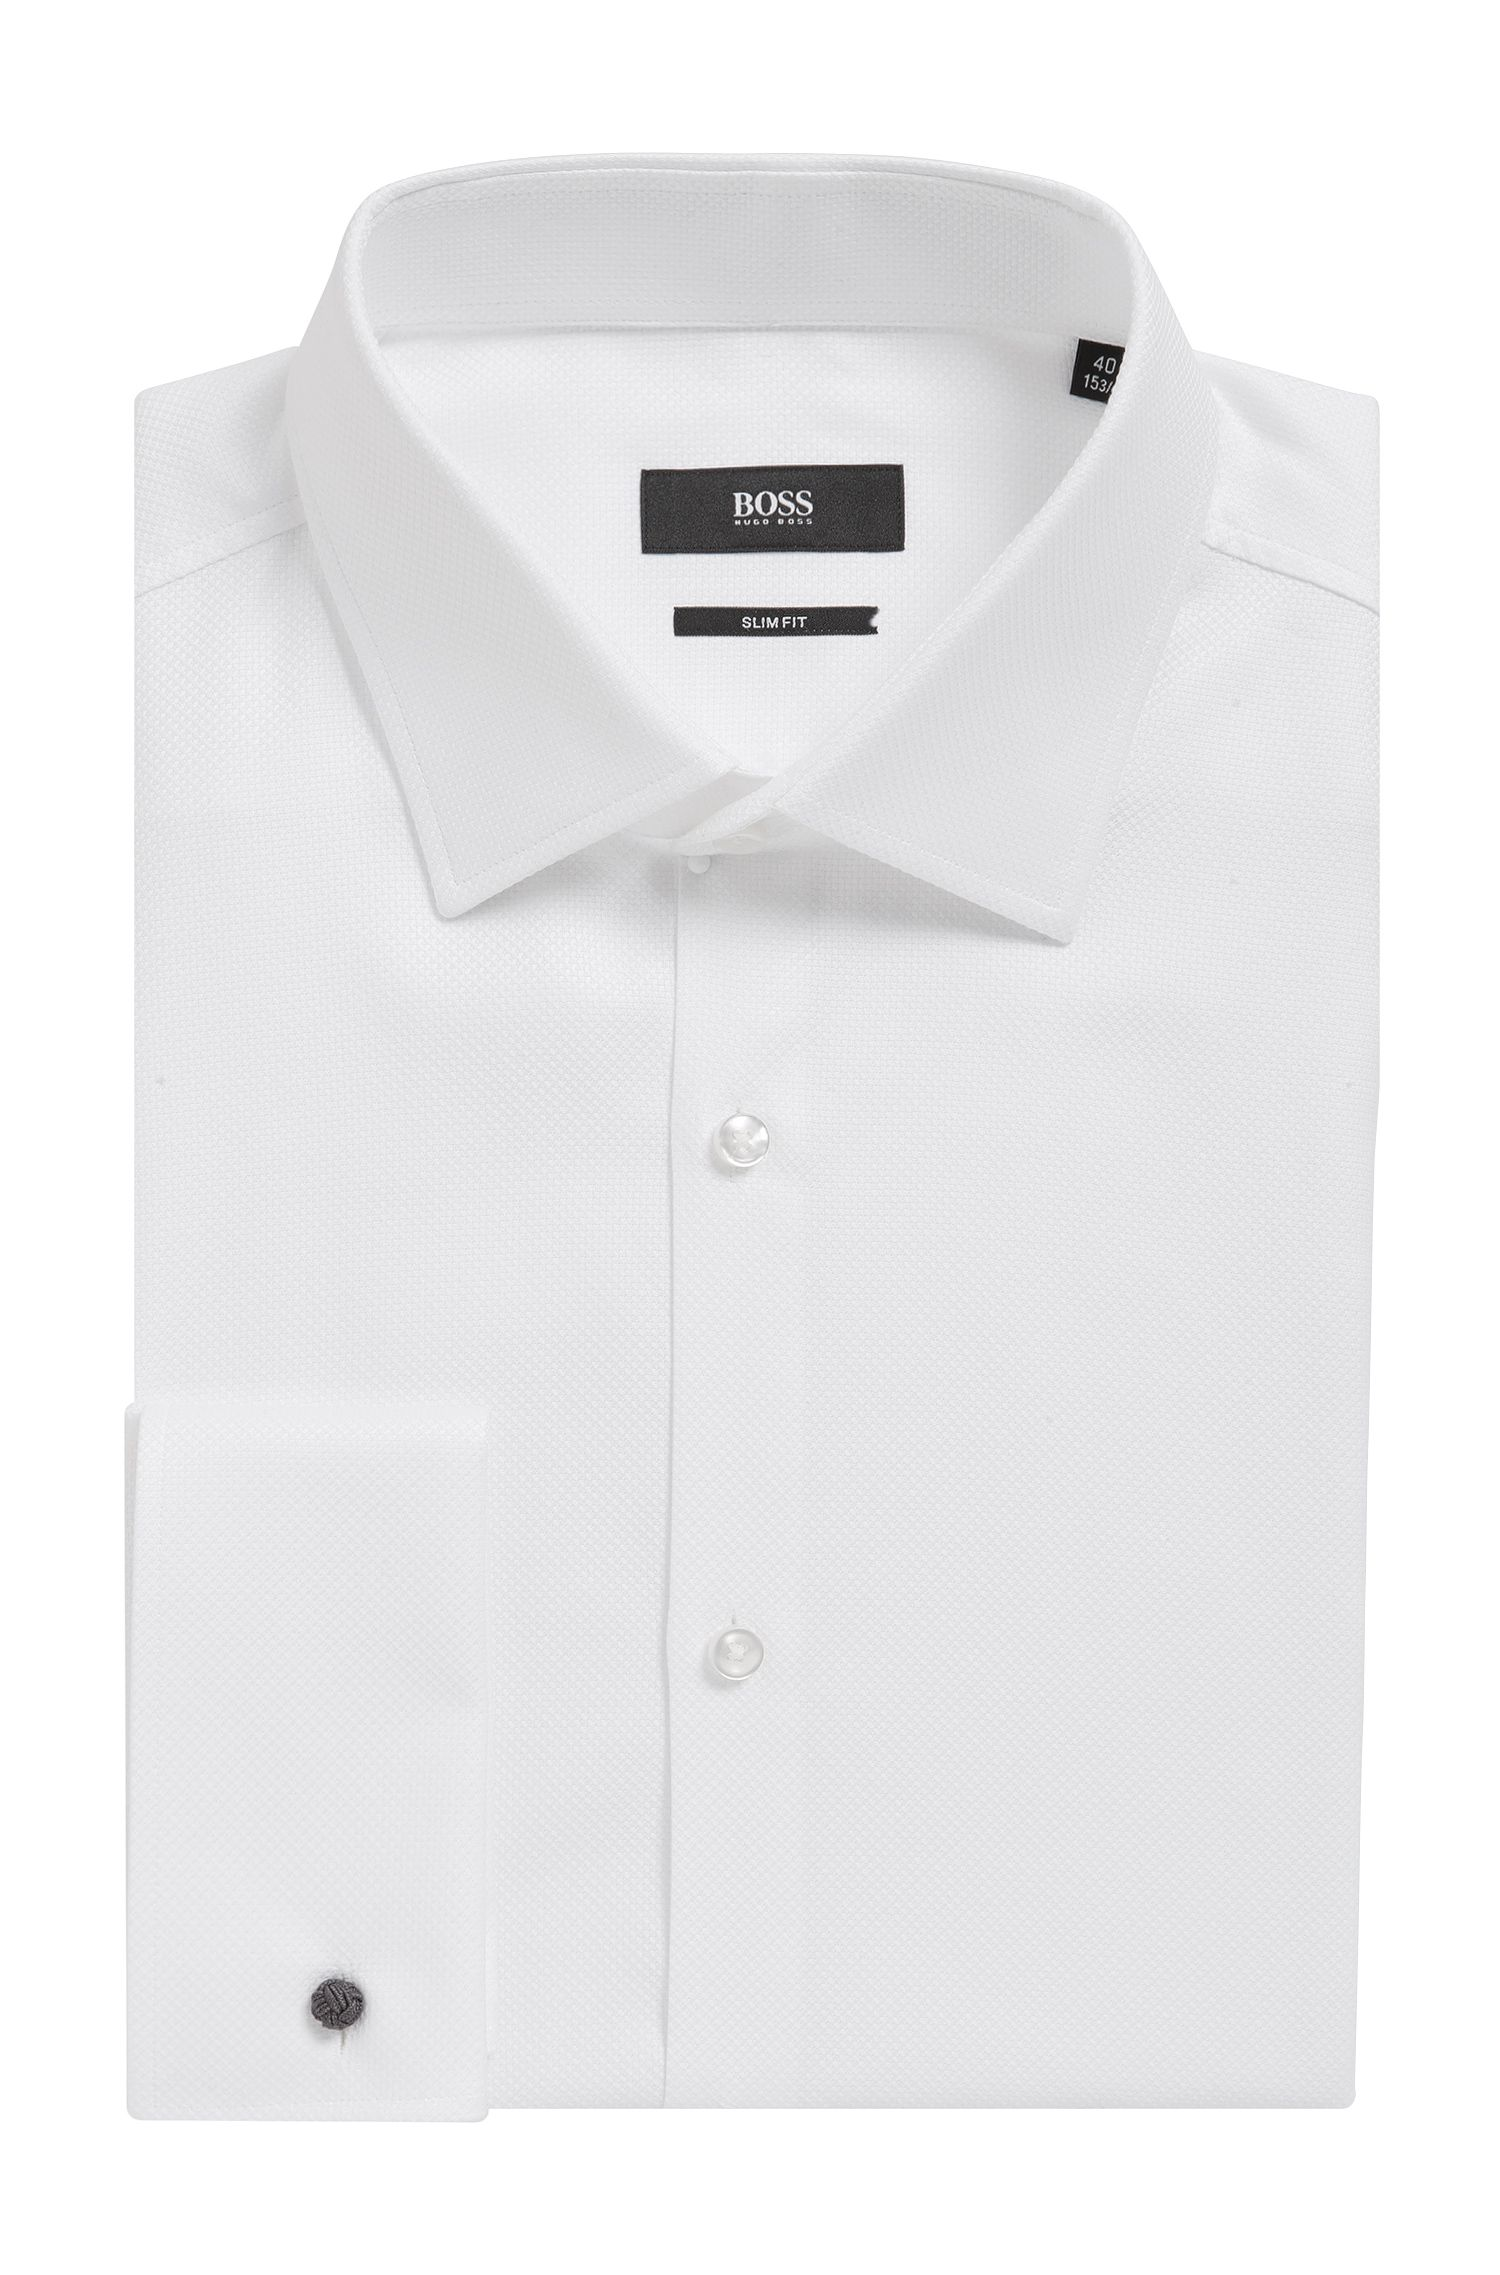 'Jacques' | Slim Fit, Geometric French Cuff Cotton Dress Shirt